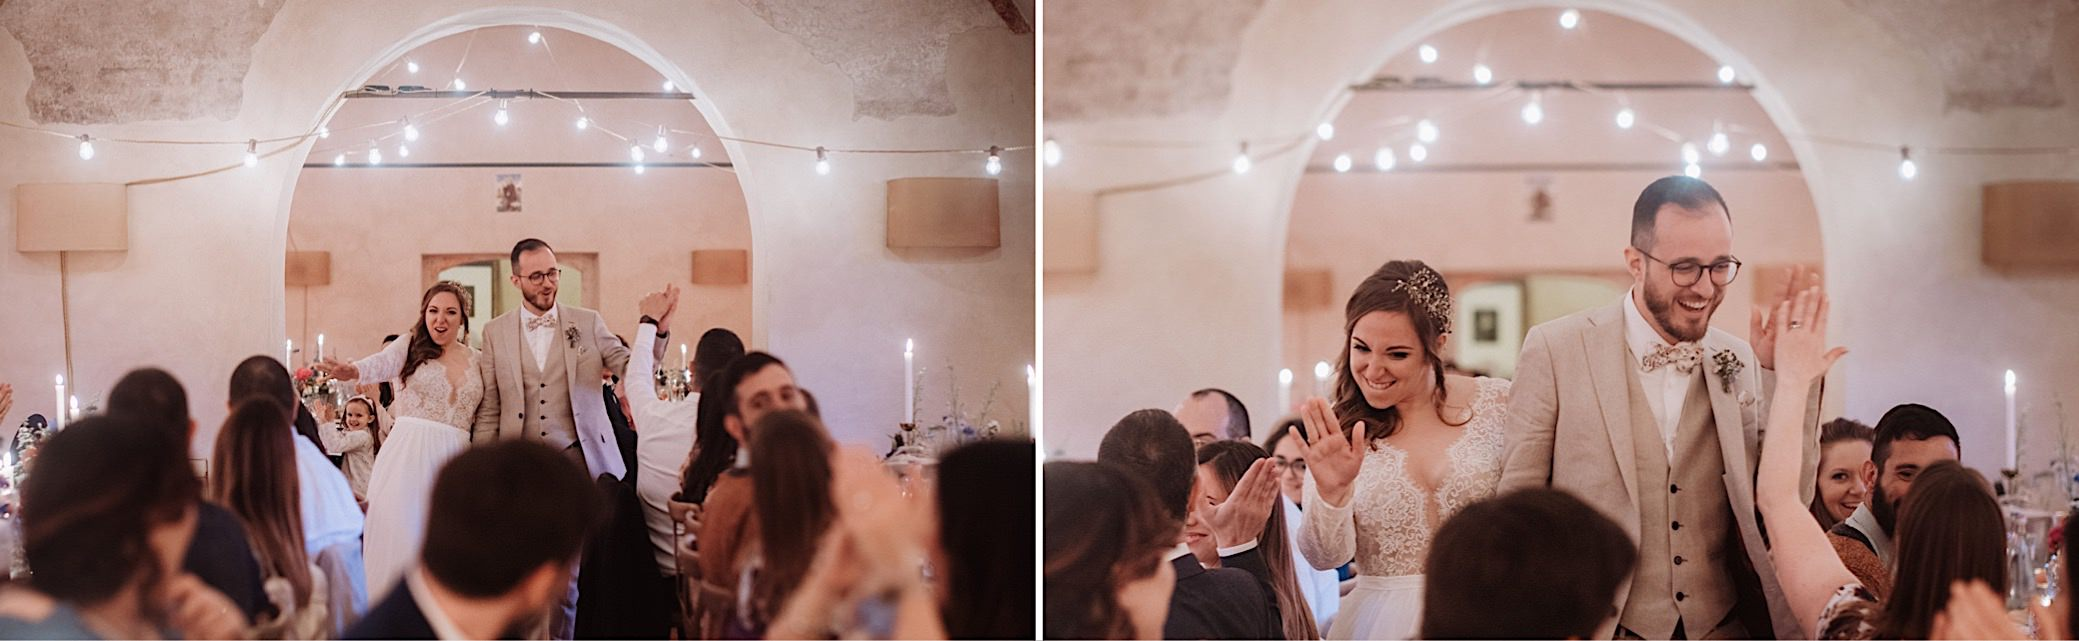 wedding at convento dell annunciata wedding photography